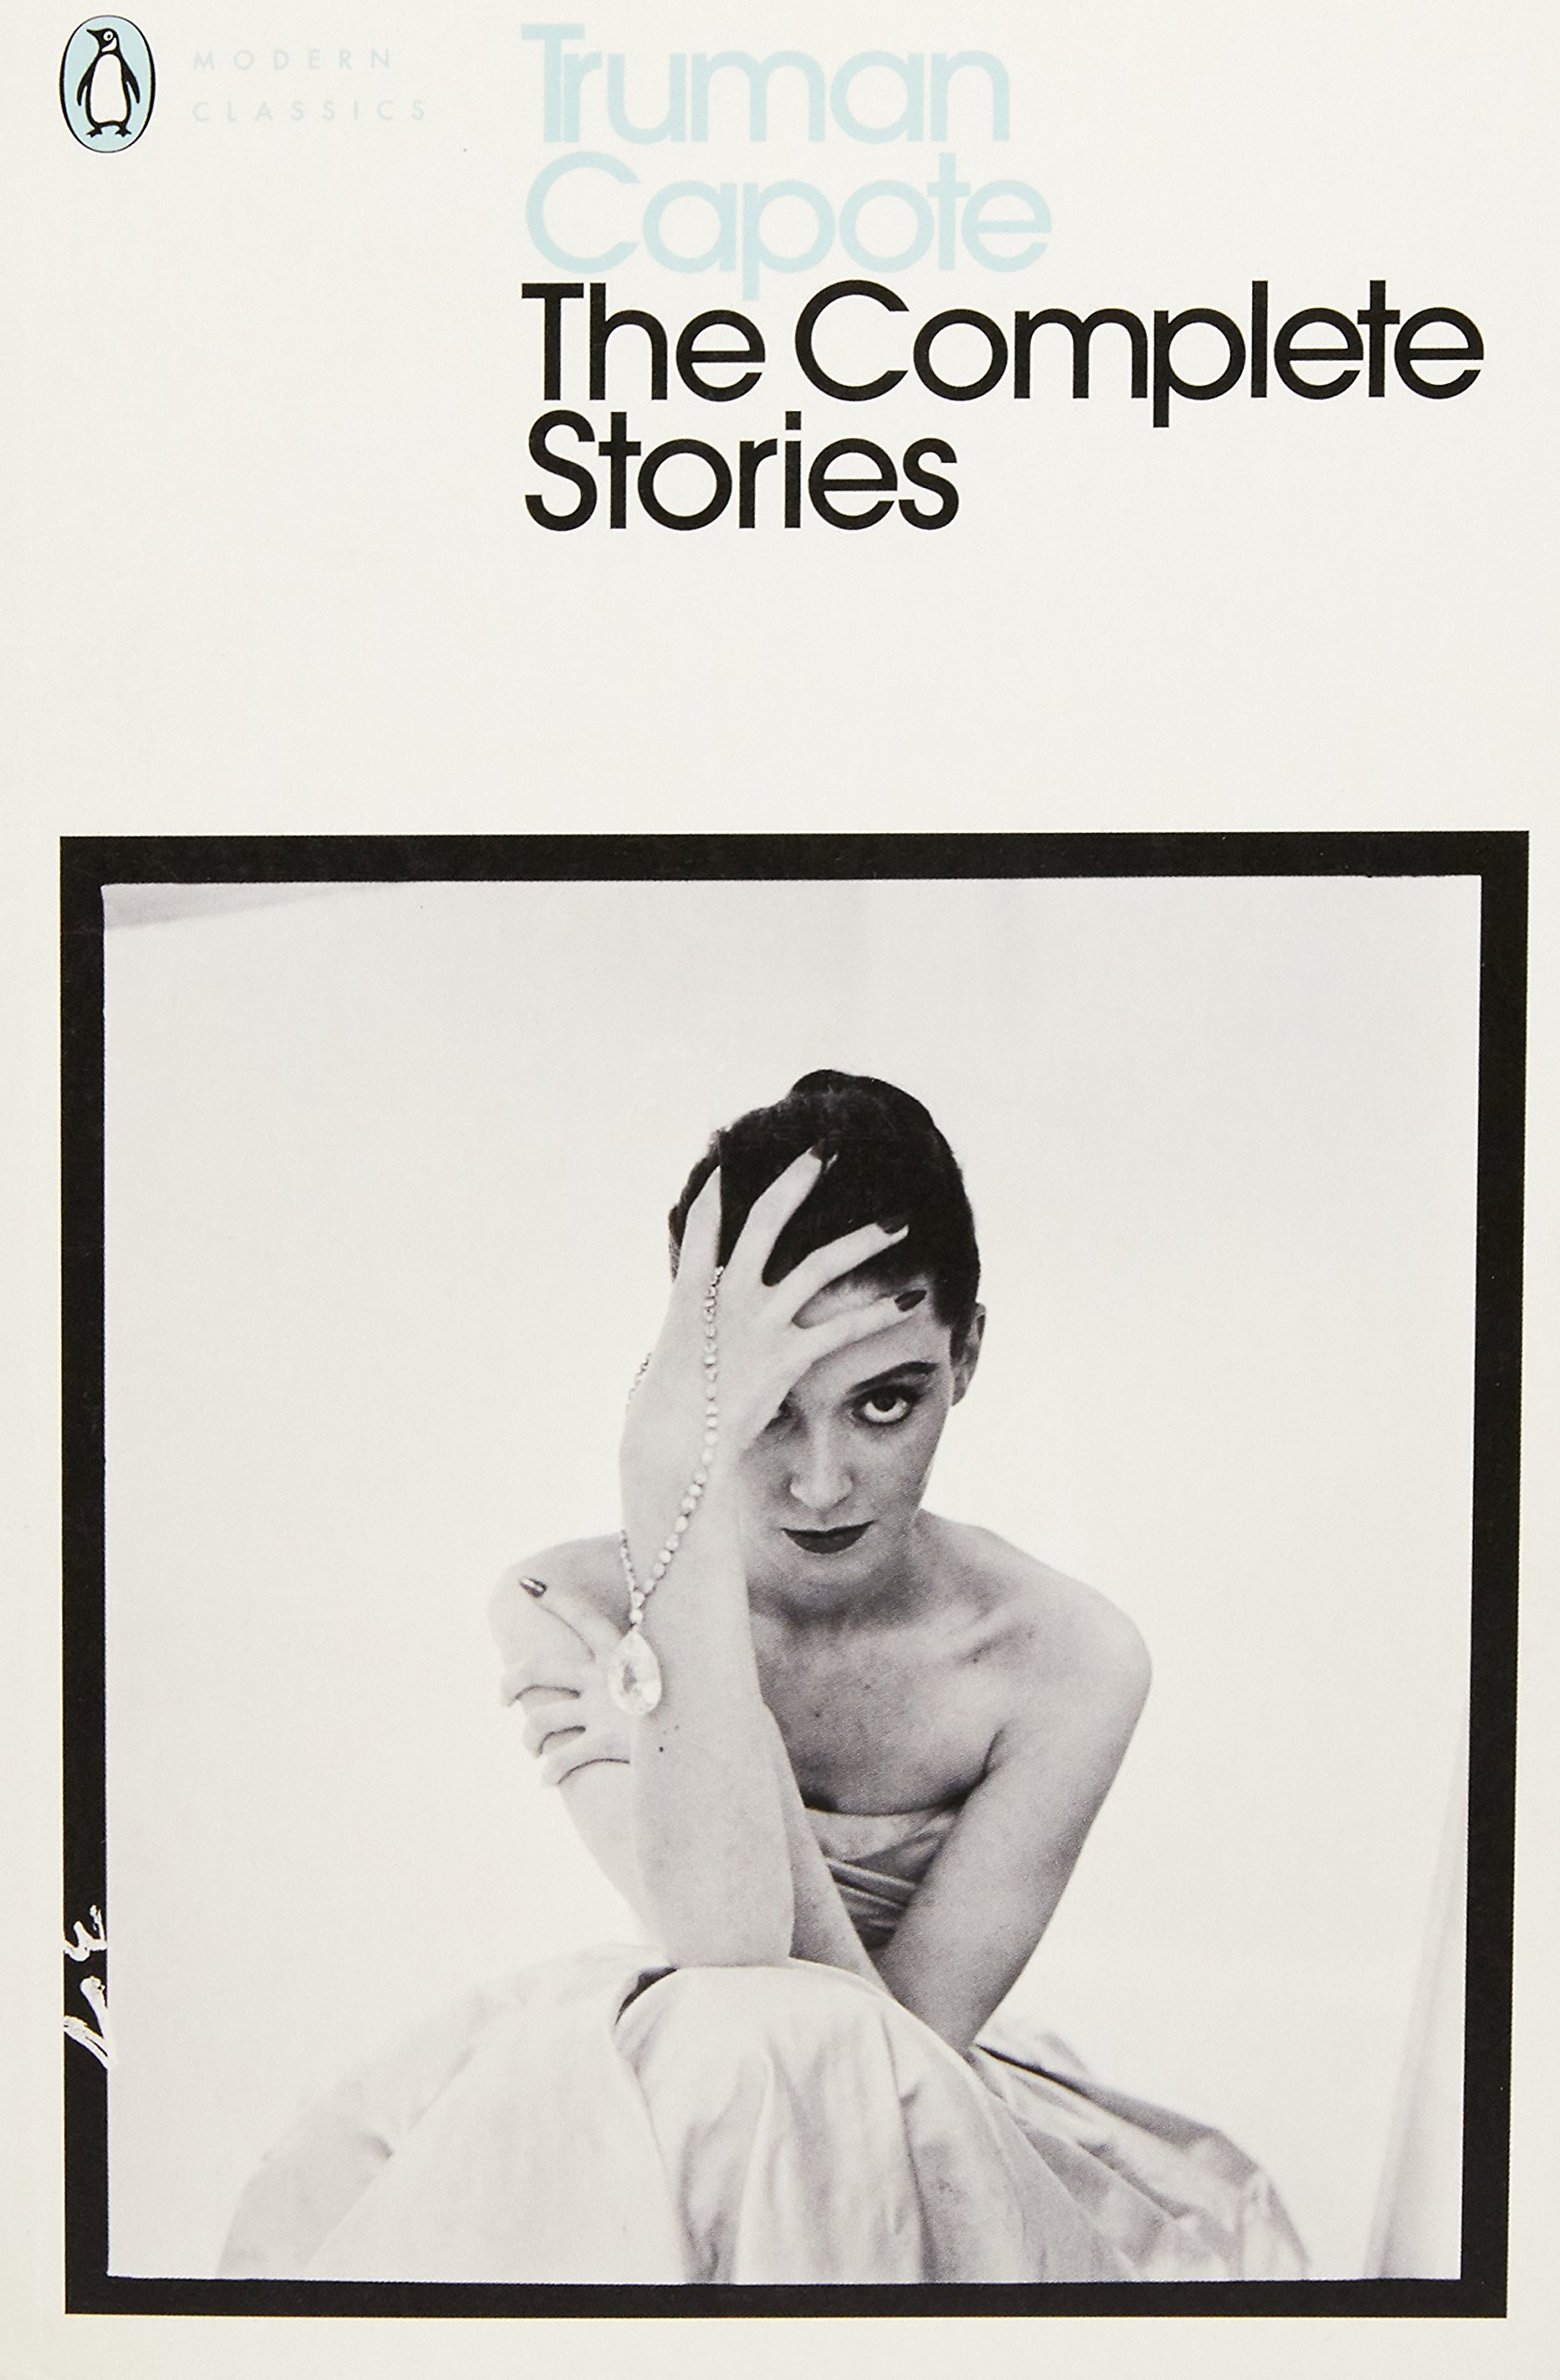 The Complete Stories (Penguin Modern Classics): Amazon.co.uk: Truman ...